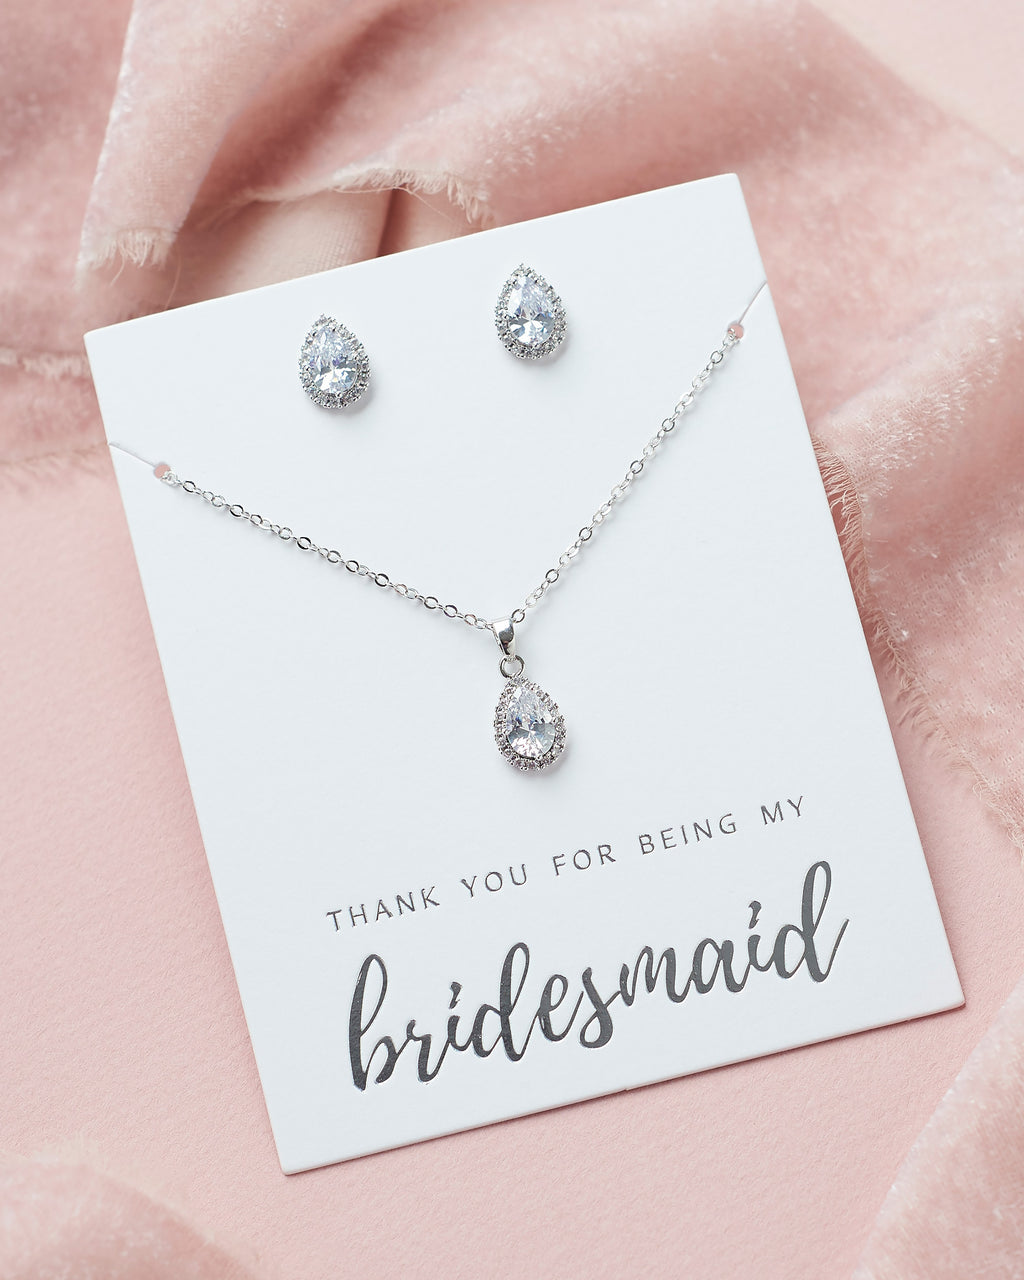 Bridesmaid Jewelry Gift